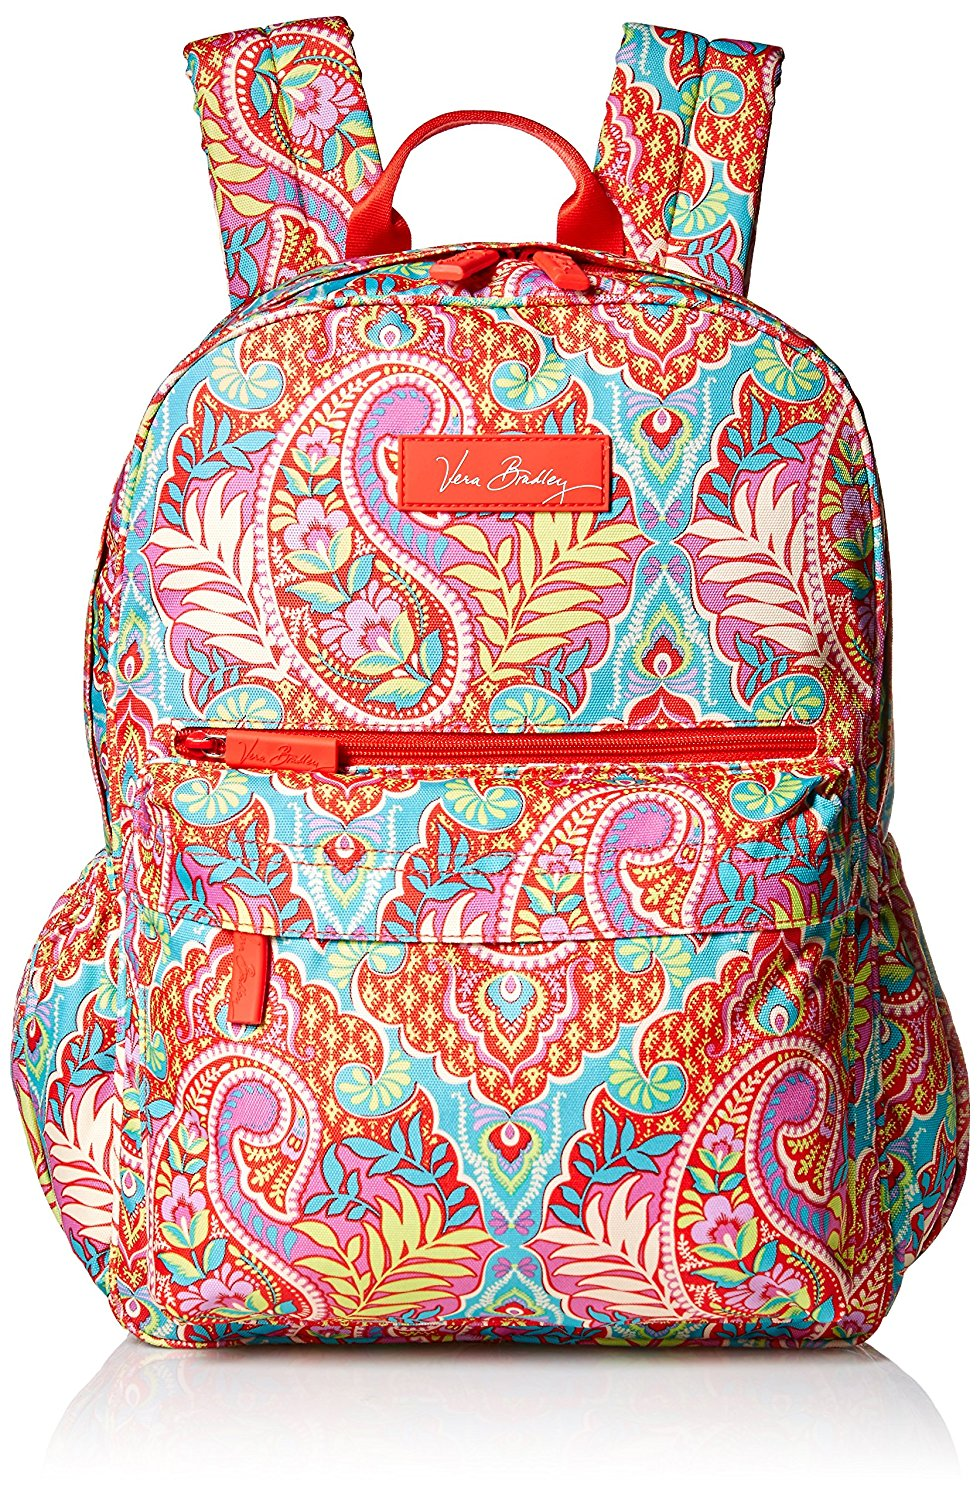 2a69816804bf Buy Vera Bradley Lighten Up Just Right Backpack